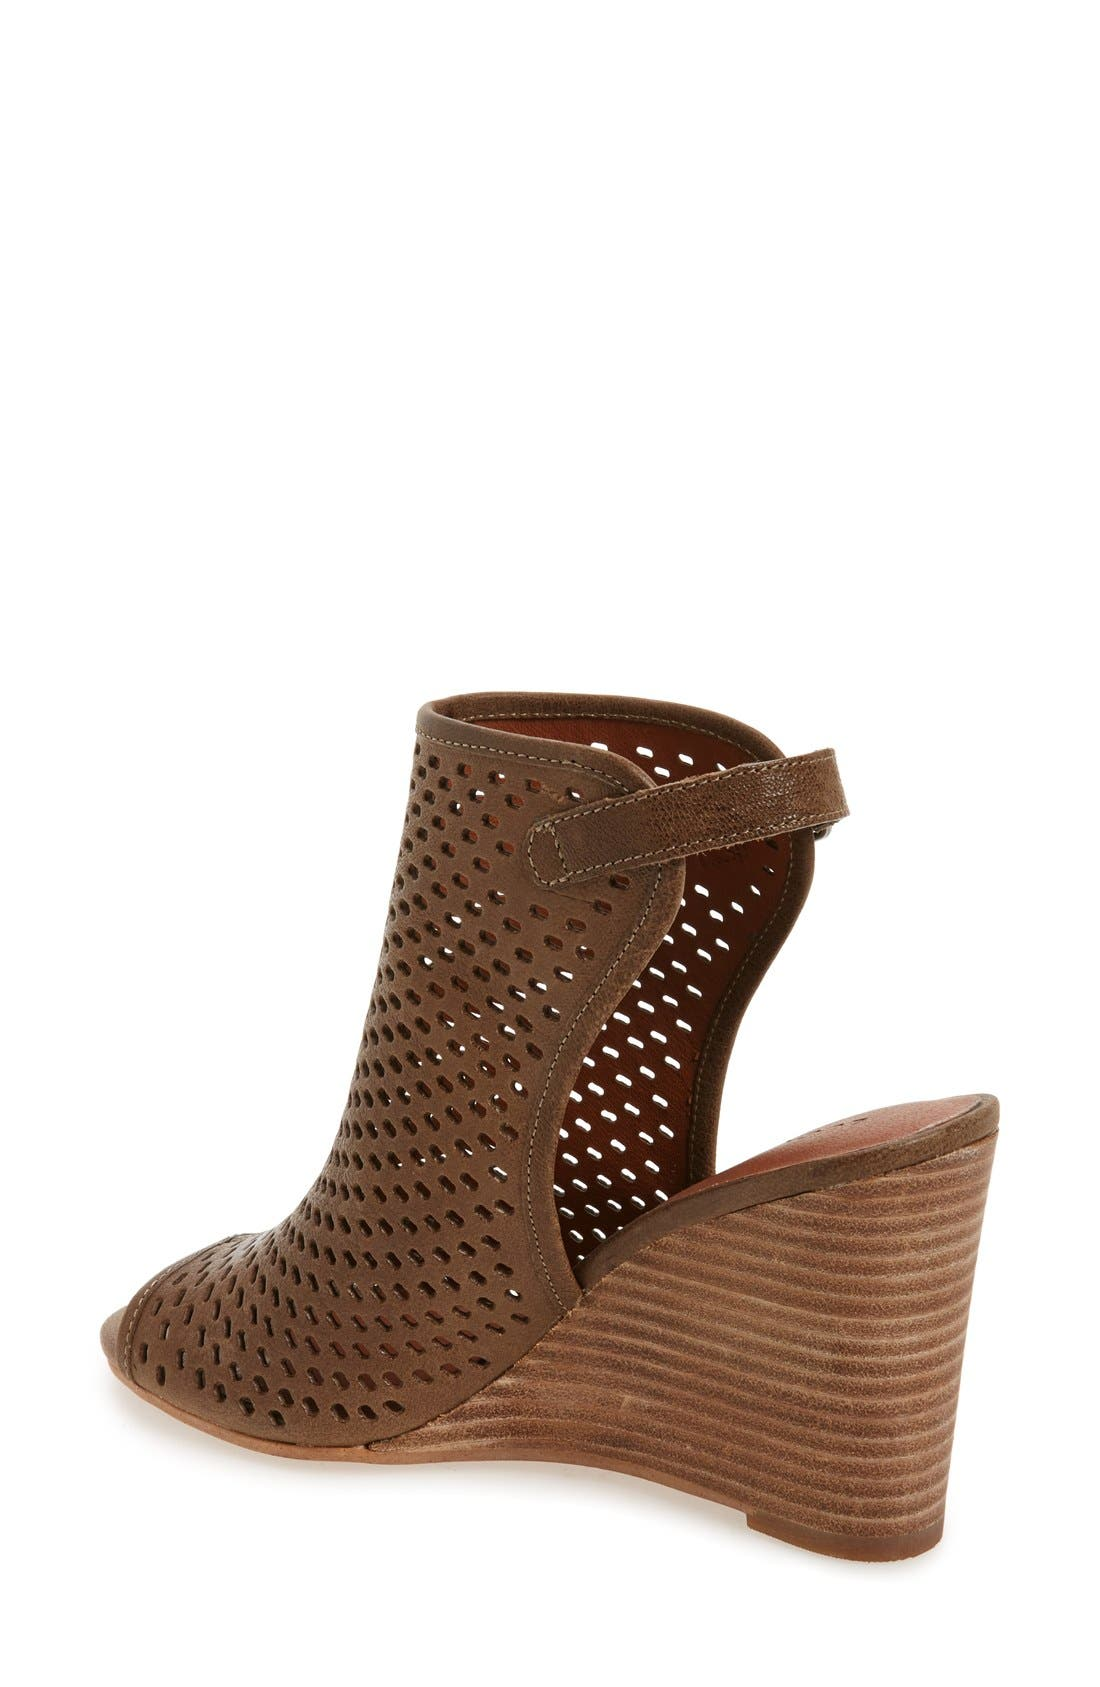 Alternate Image 2  - Lucky Brand 'Rozina' Cutout Wedge Sandal (Women)